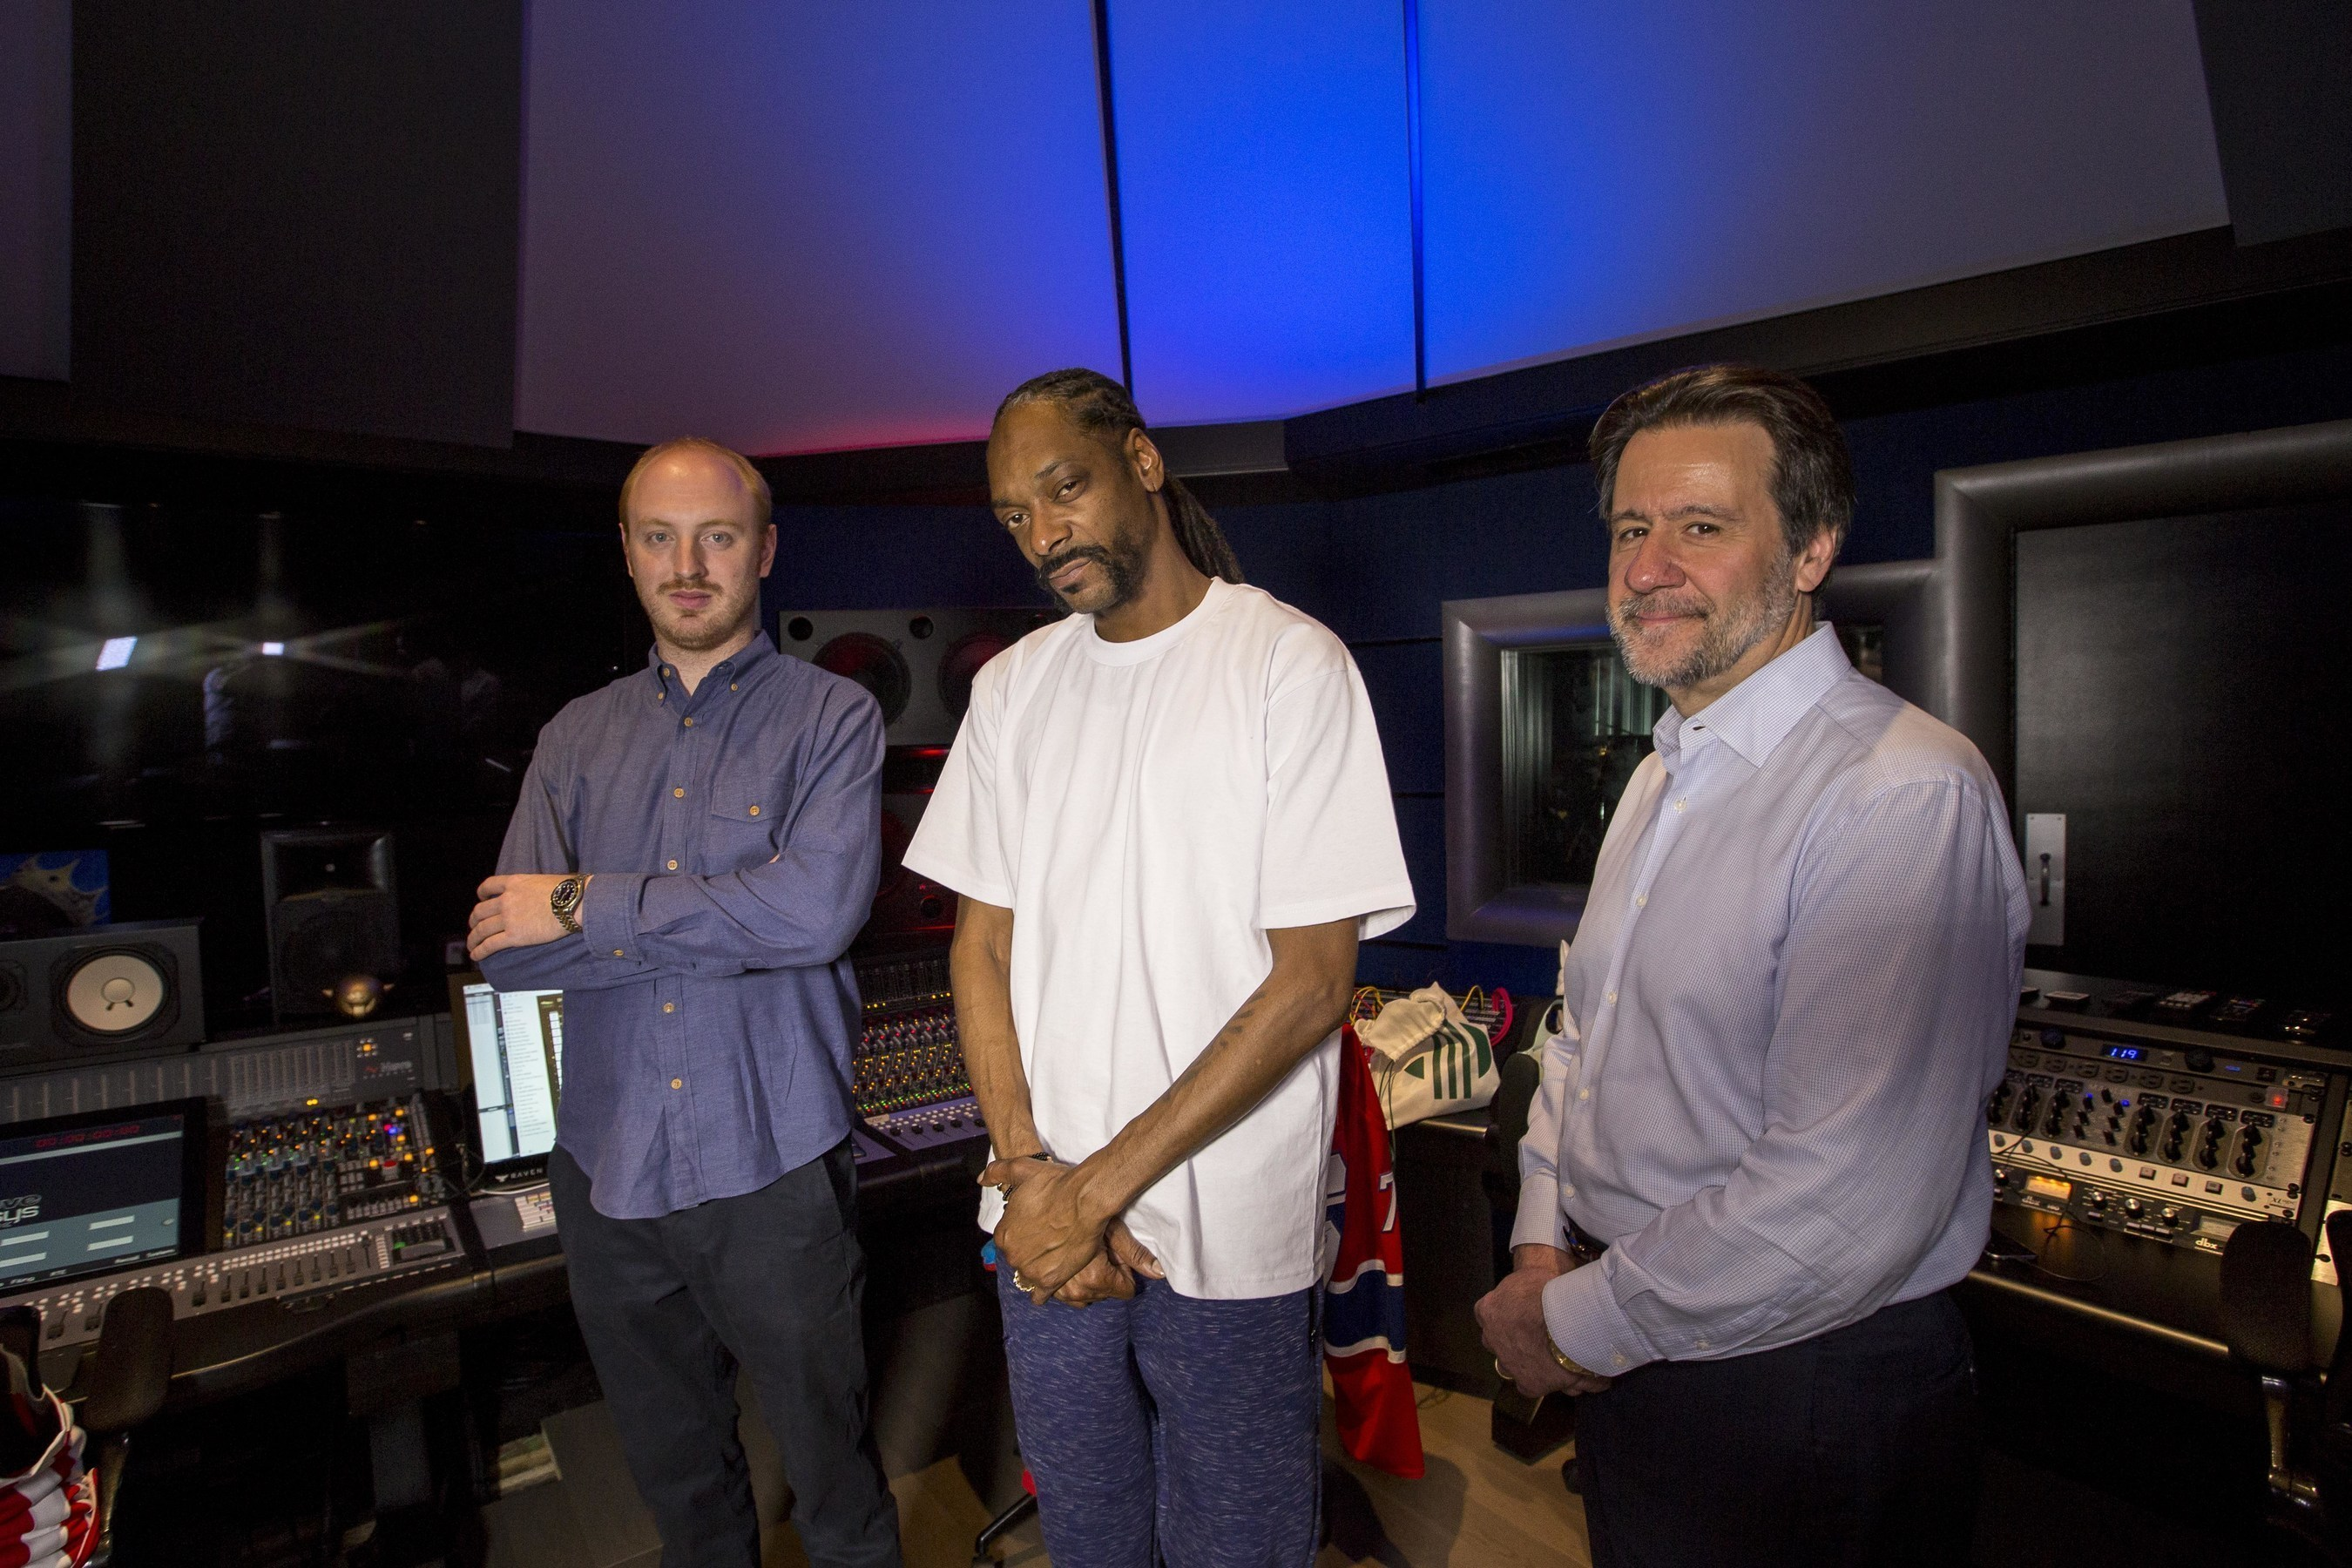 Snoop Dogg Chooses Westlake Pro to Design, Build, and Equip His State-of-the-Art Recording/Video Production/Broadcast Studio